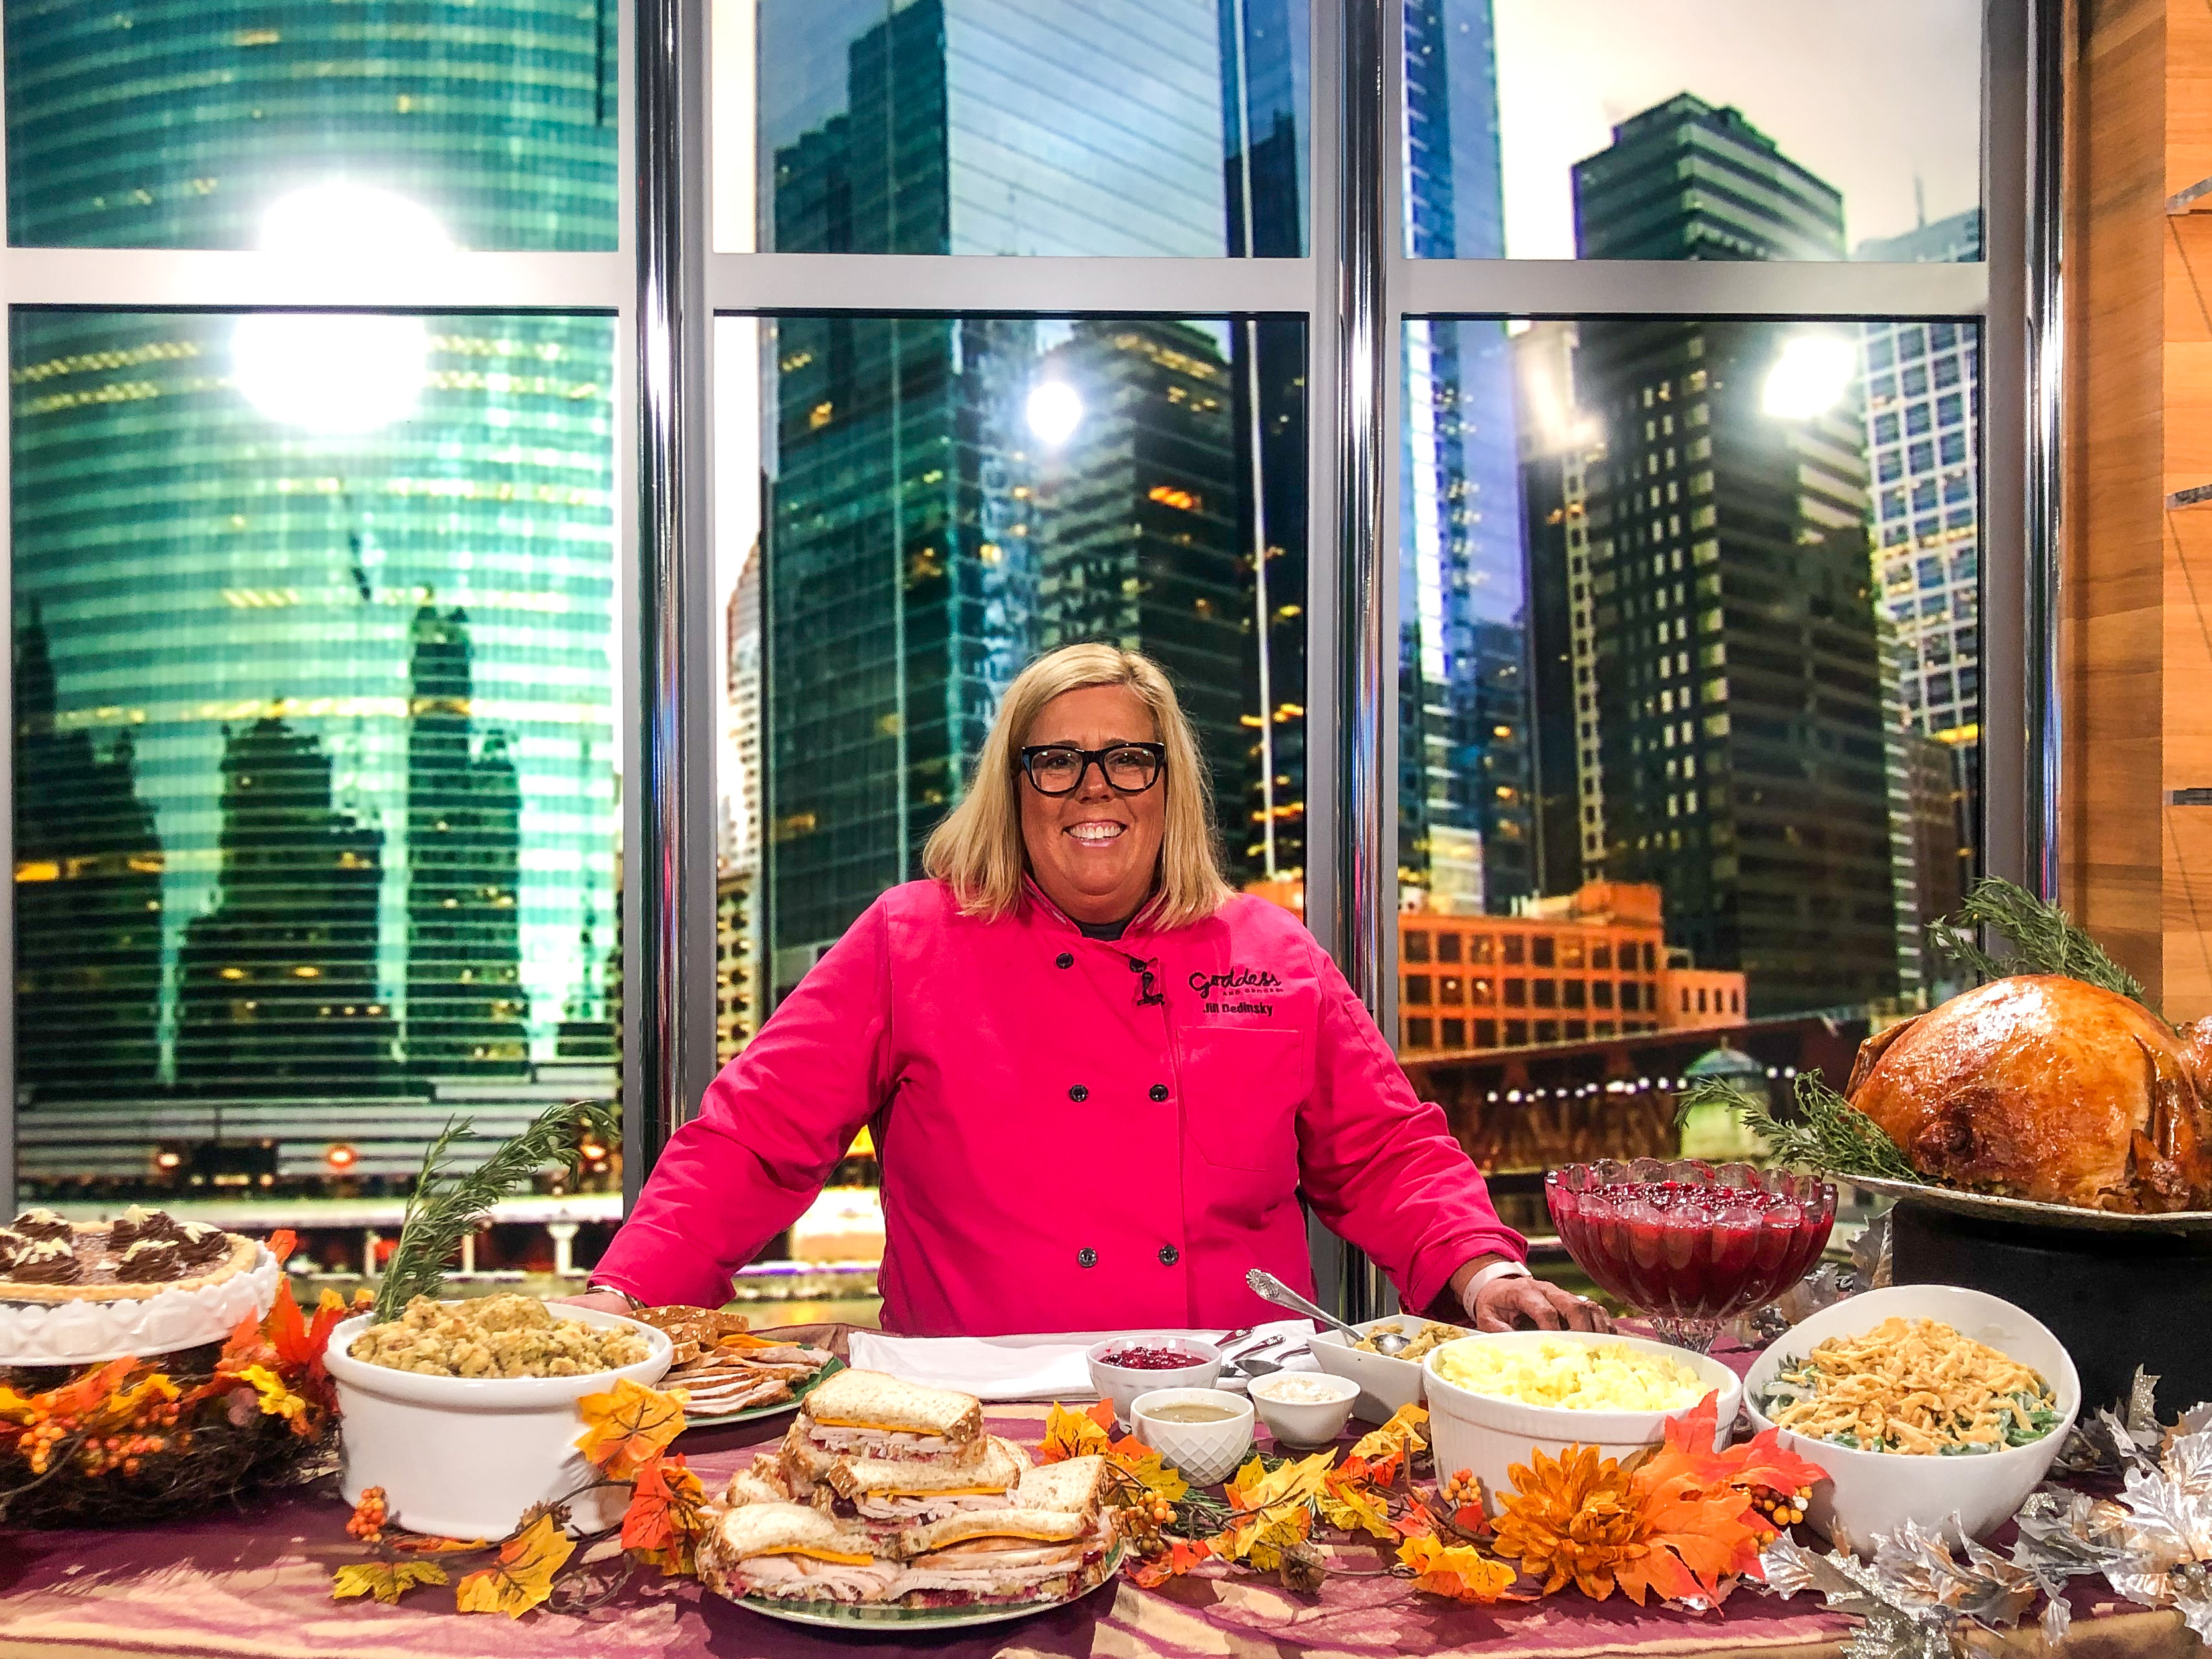 A woman with blonde hair and a bright pink chef's coat stands smiling behind a table full of ingredients.